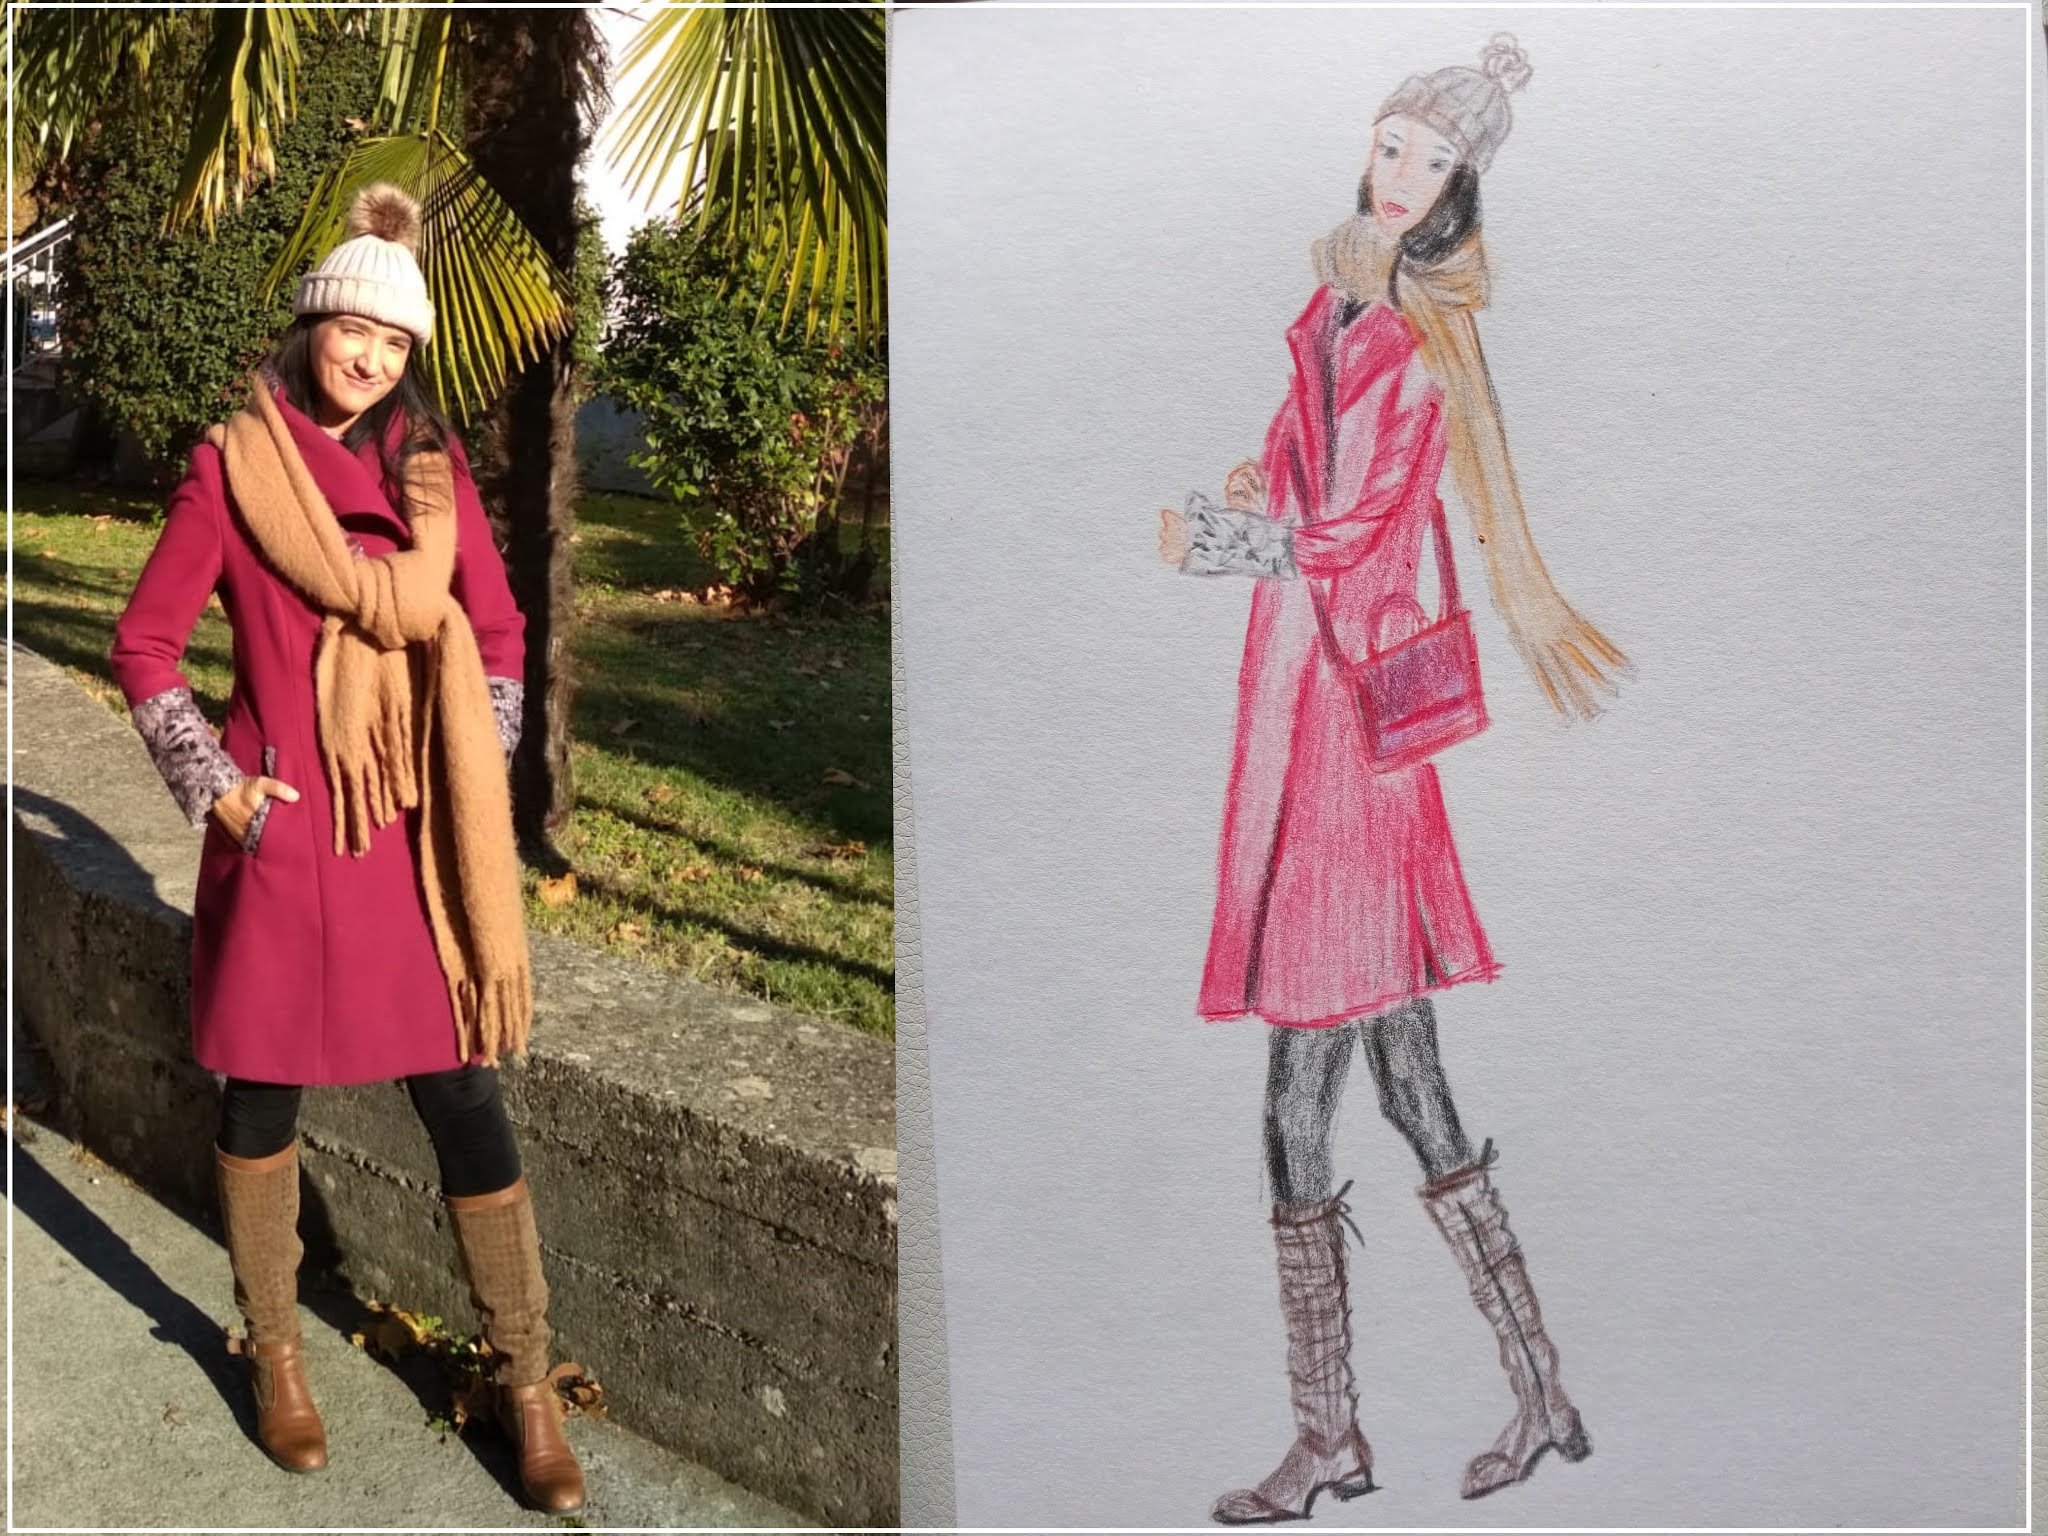 FASHION ILLUSTRATION AND OUTFIT OF THE DAY: AUTUMN STYLING